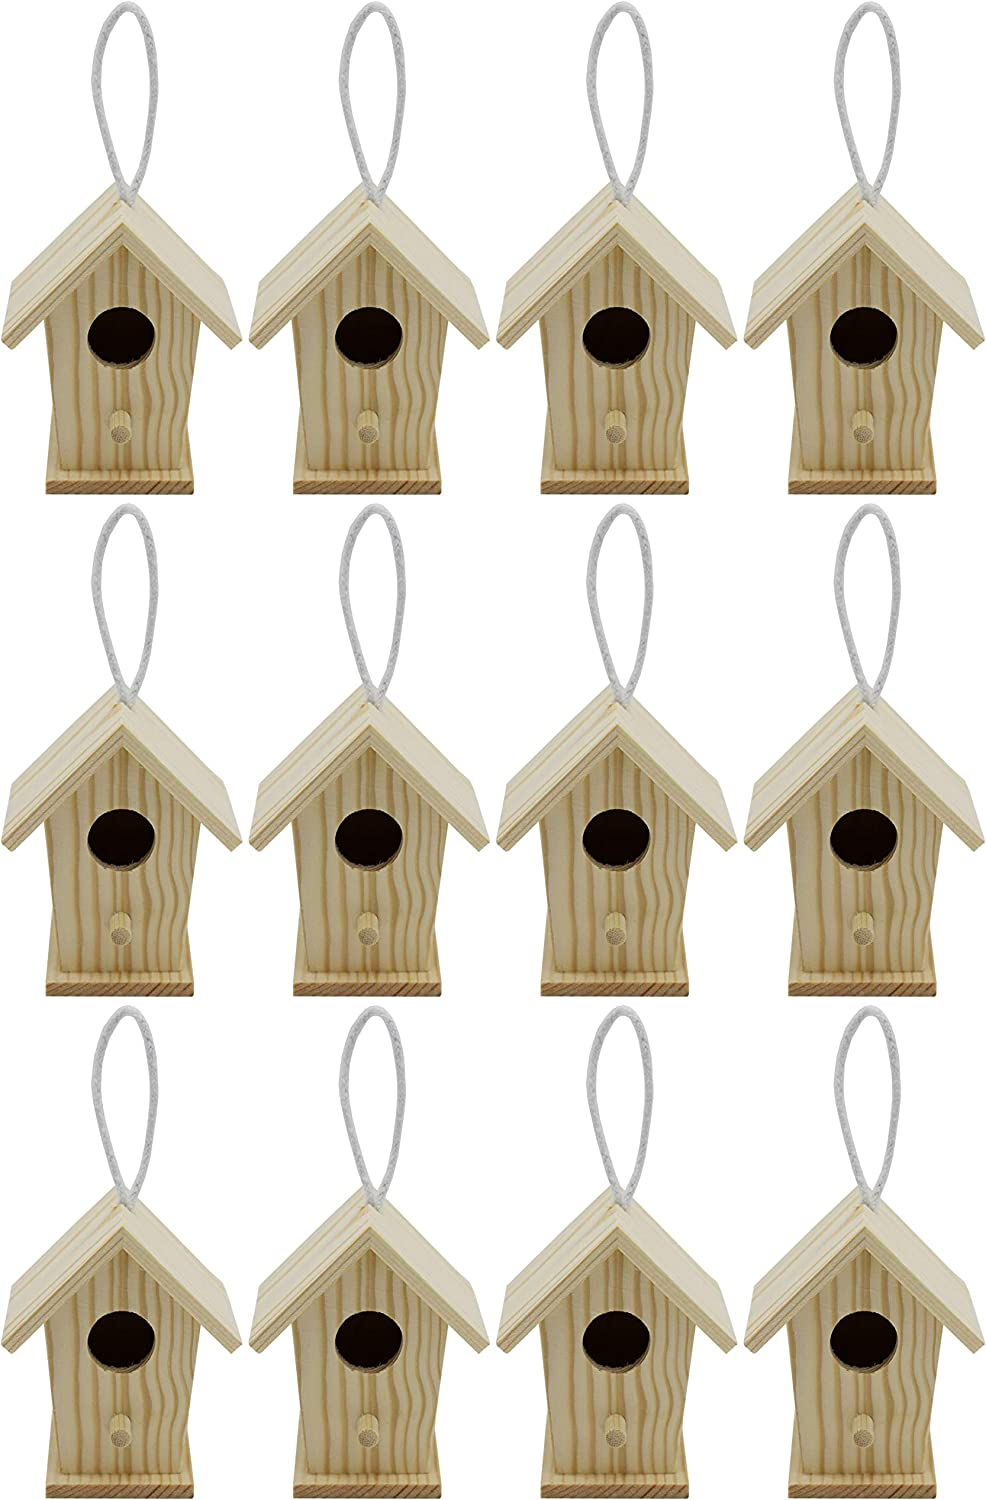 Creative Hobbies 12-Pack of Mini Wooden Bird Houses to Paint, with Hanging Cords, Unfinished DIY Design Your Own Great for Crafts, Weddings, Bible Camp and More!